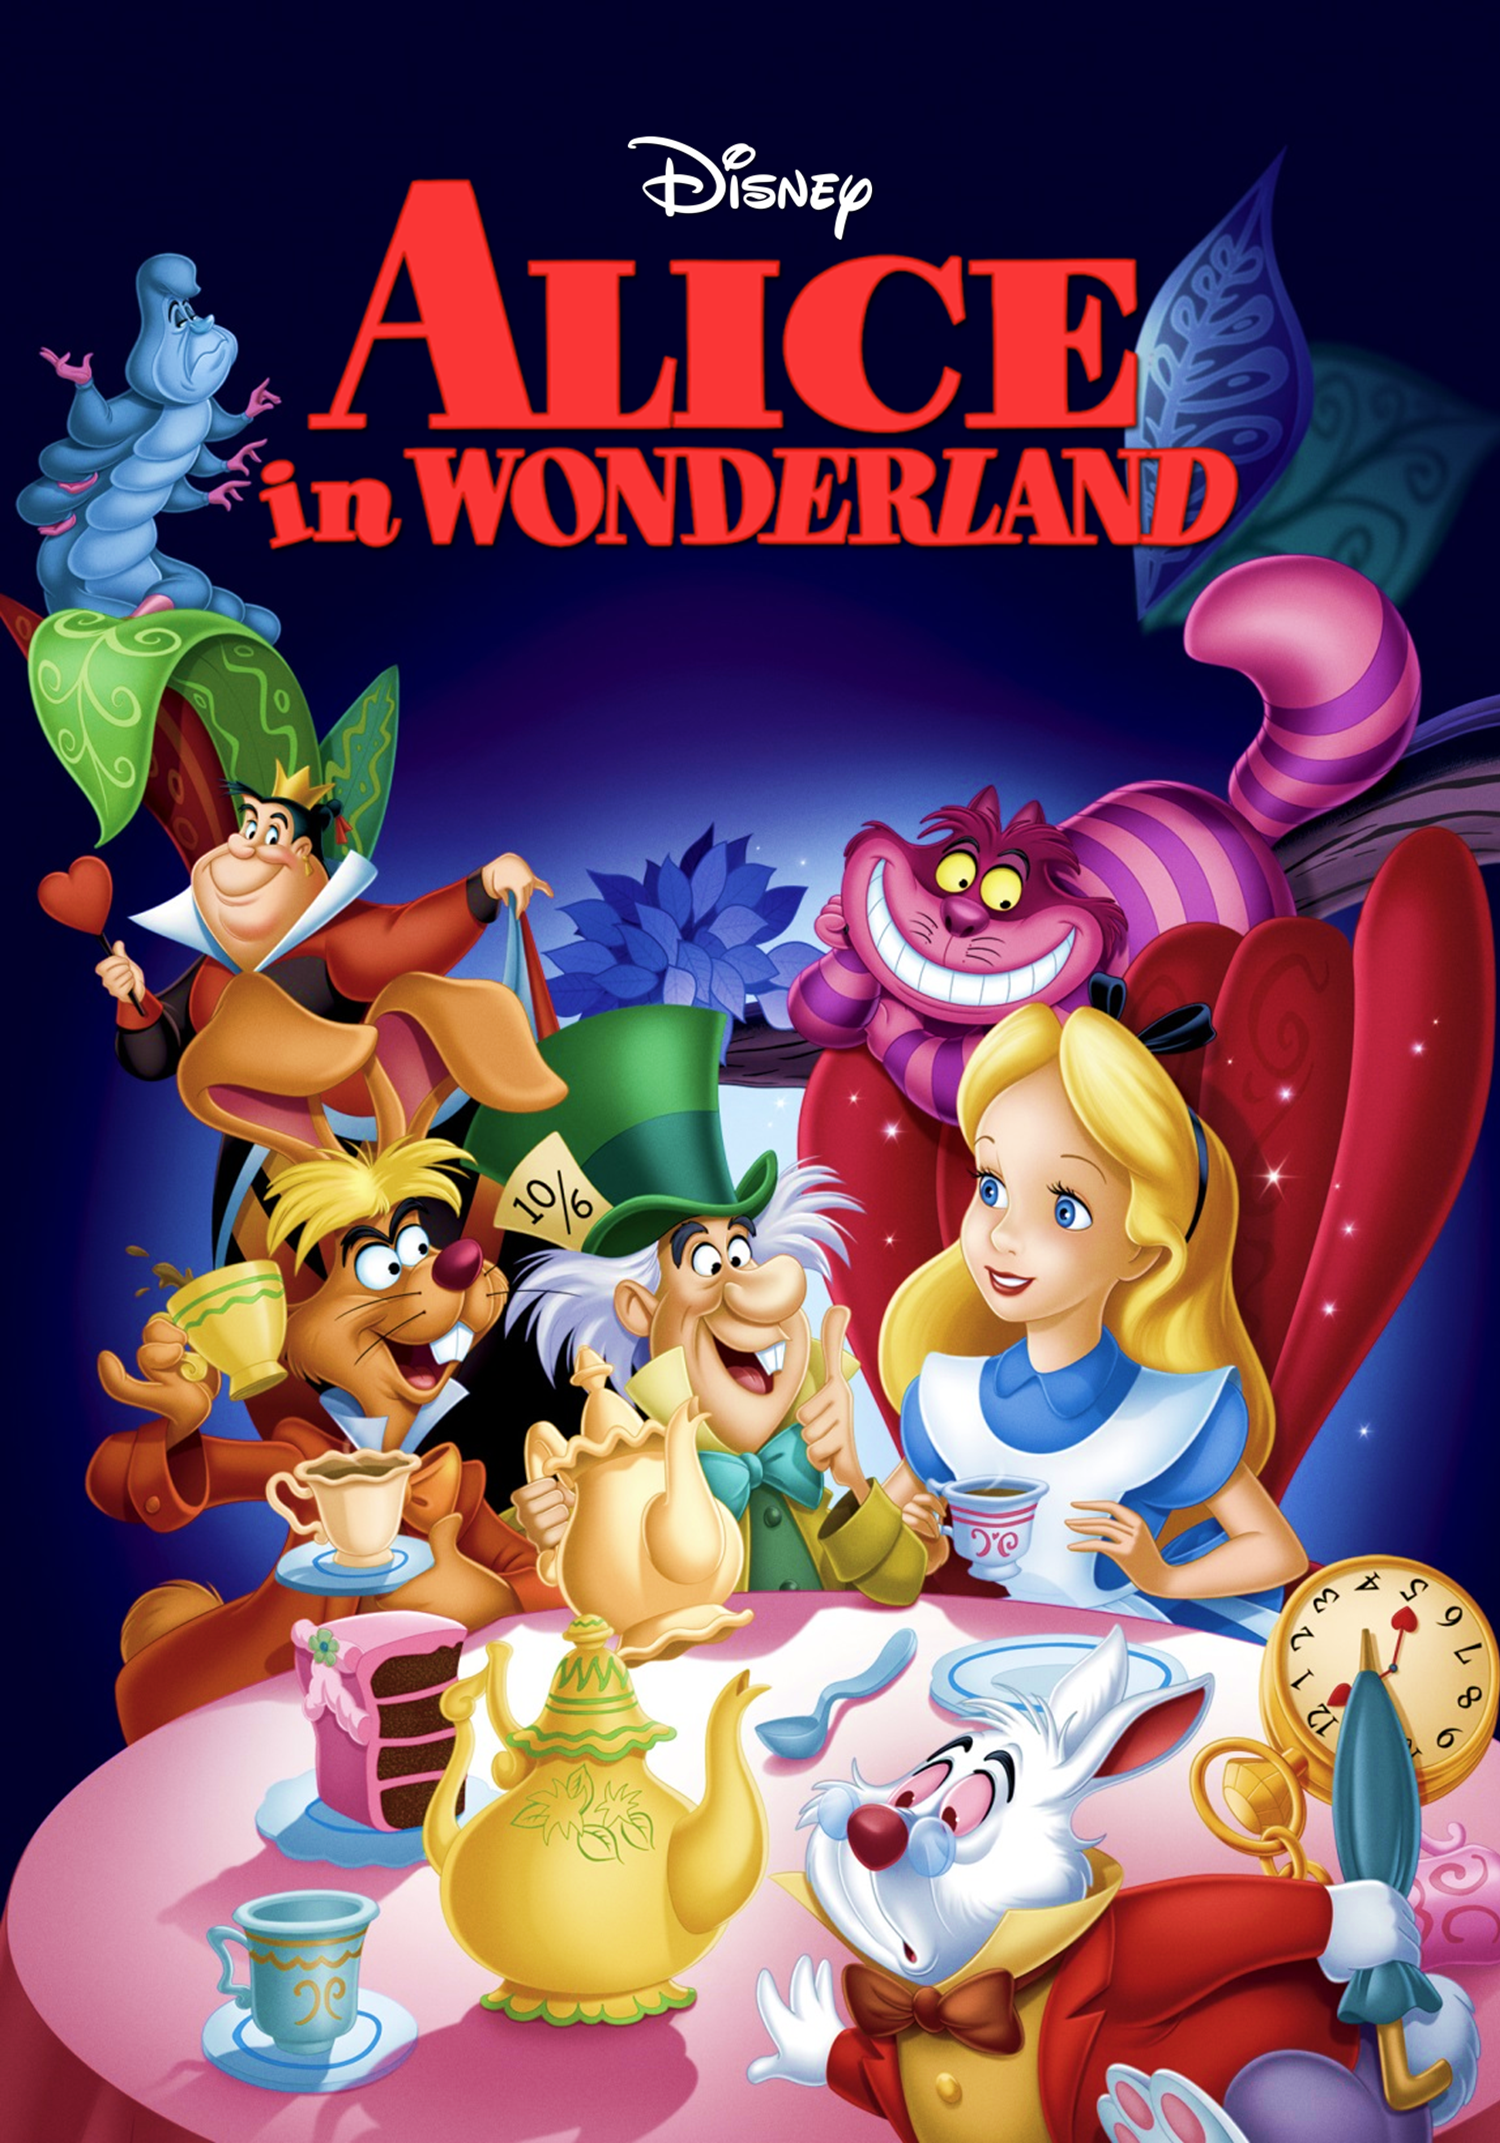 Epic Dvd Front Cover Image - Alice in Wonde...